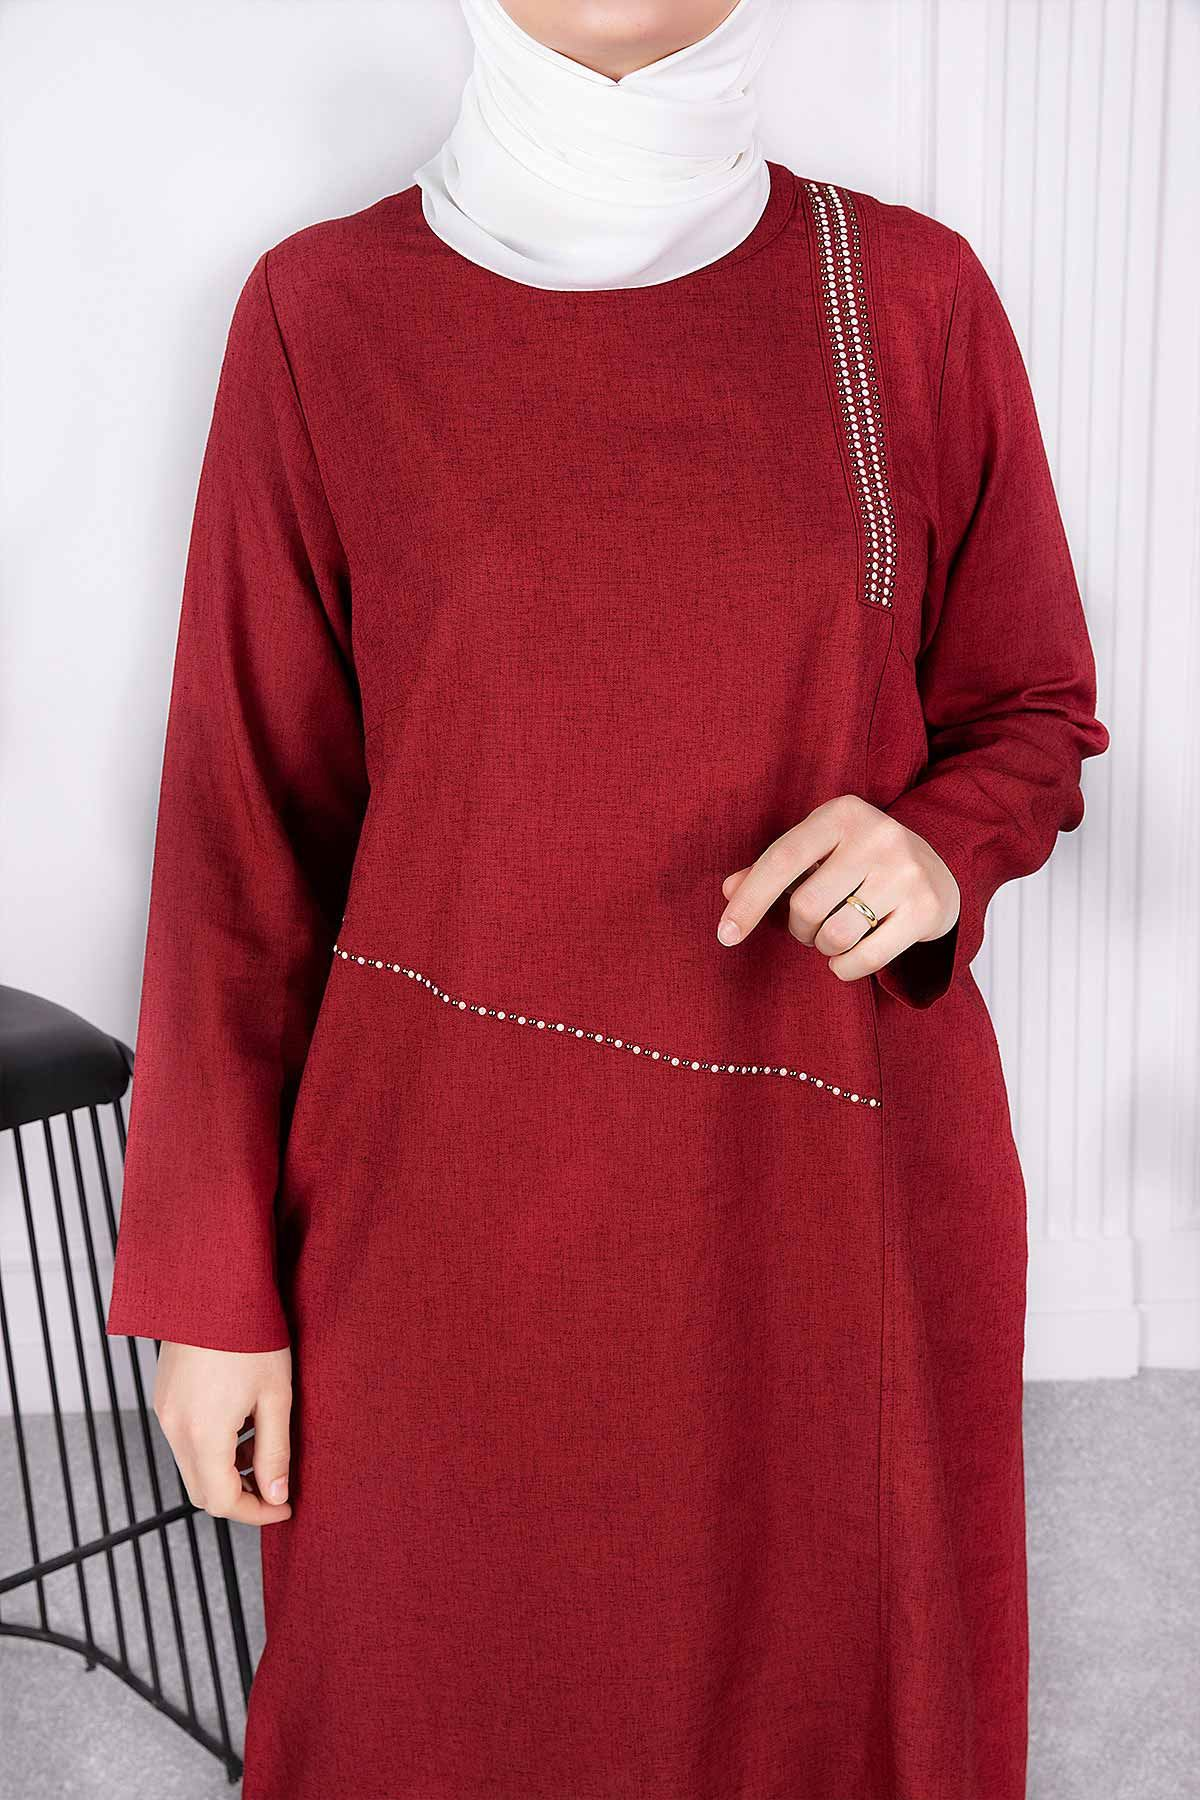 Alya Tunik Bordo 23002